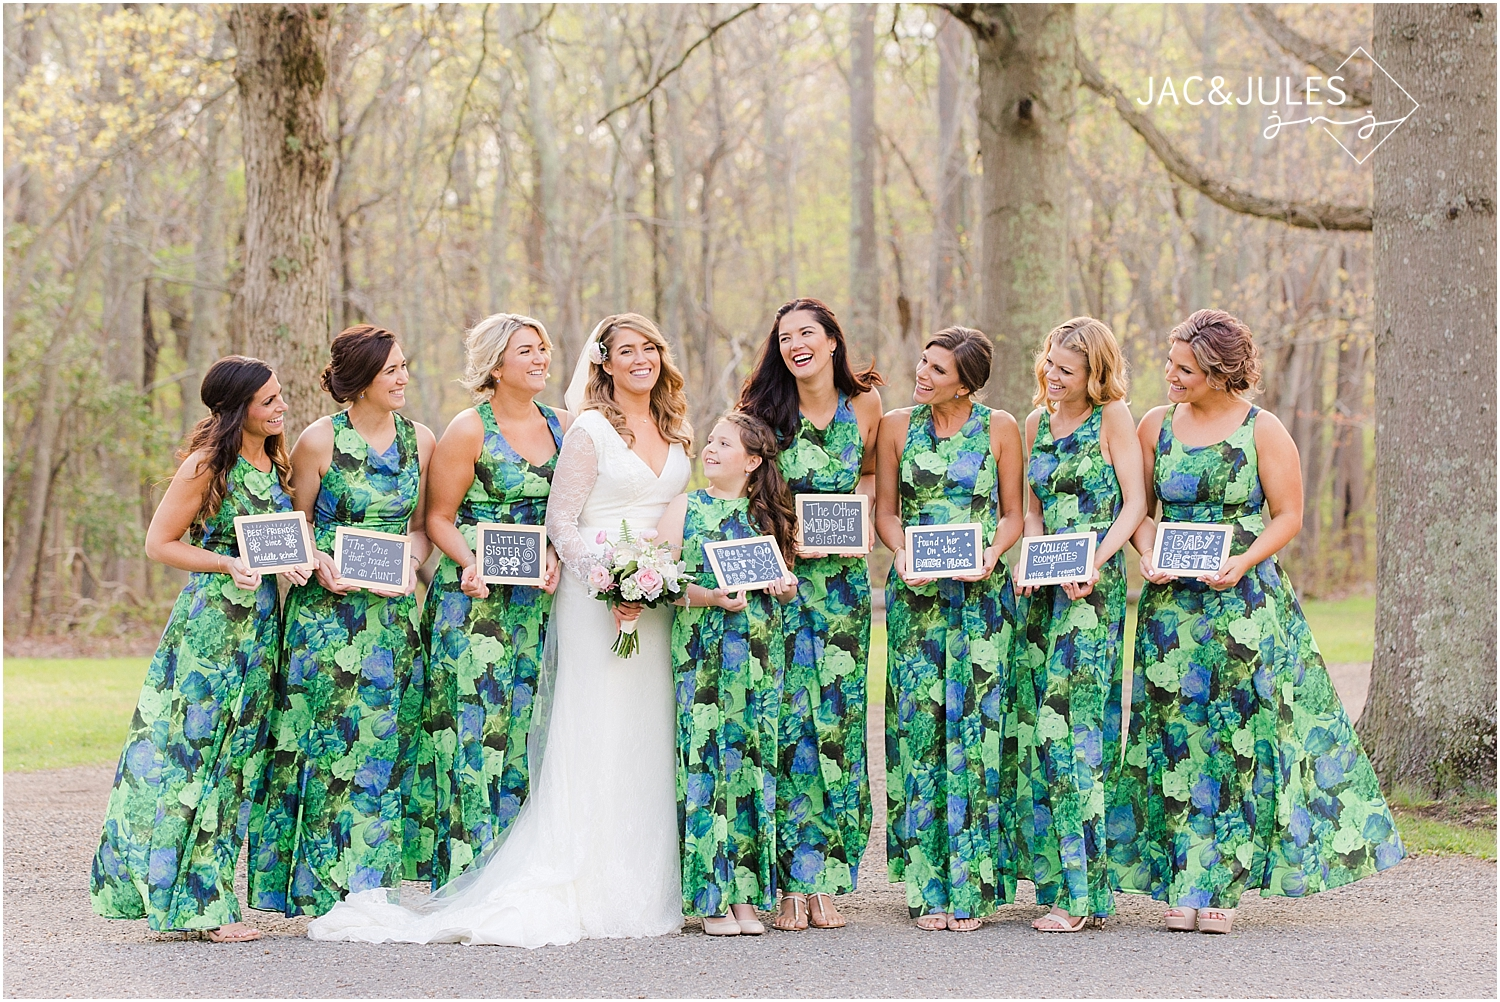 jacnjules photograph bride and bridesmaids holding chalkboard signs